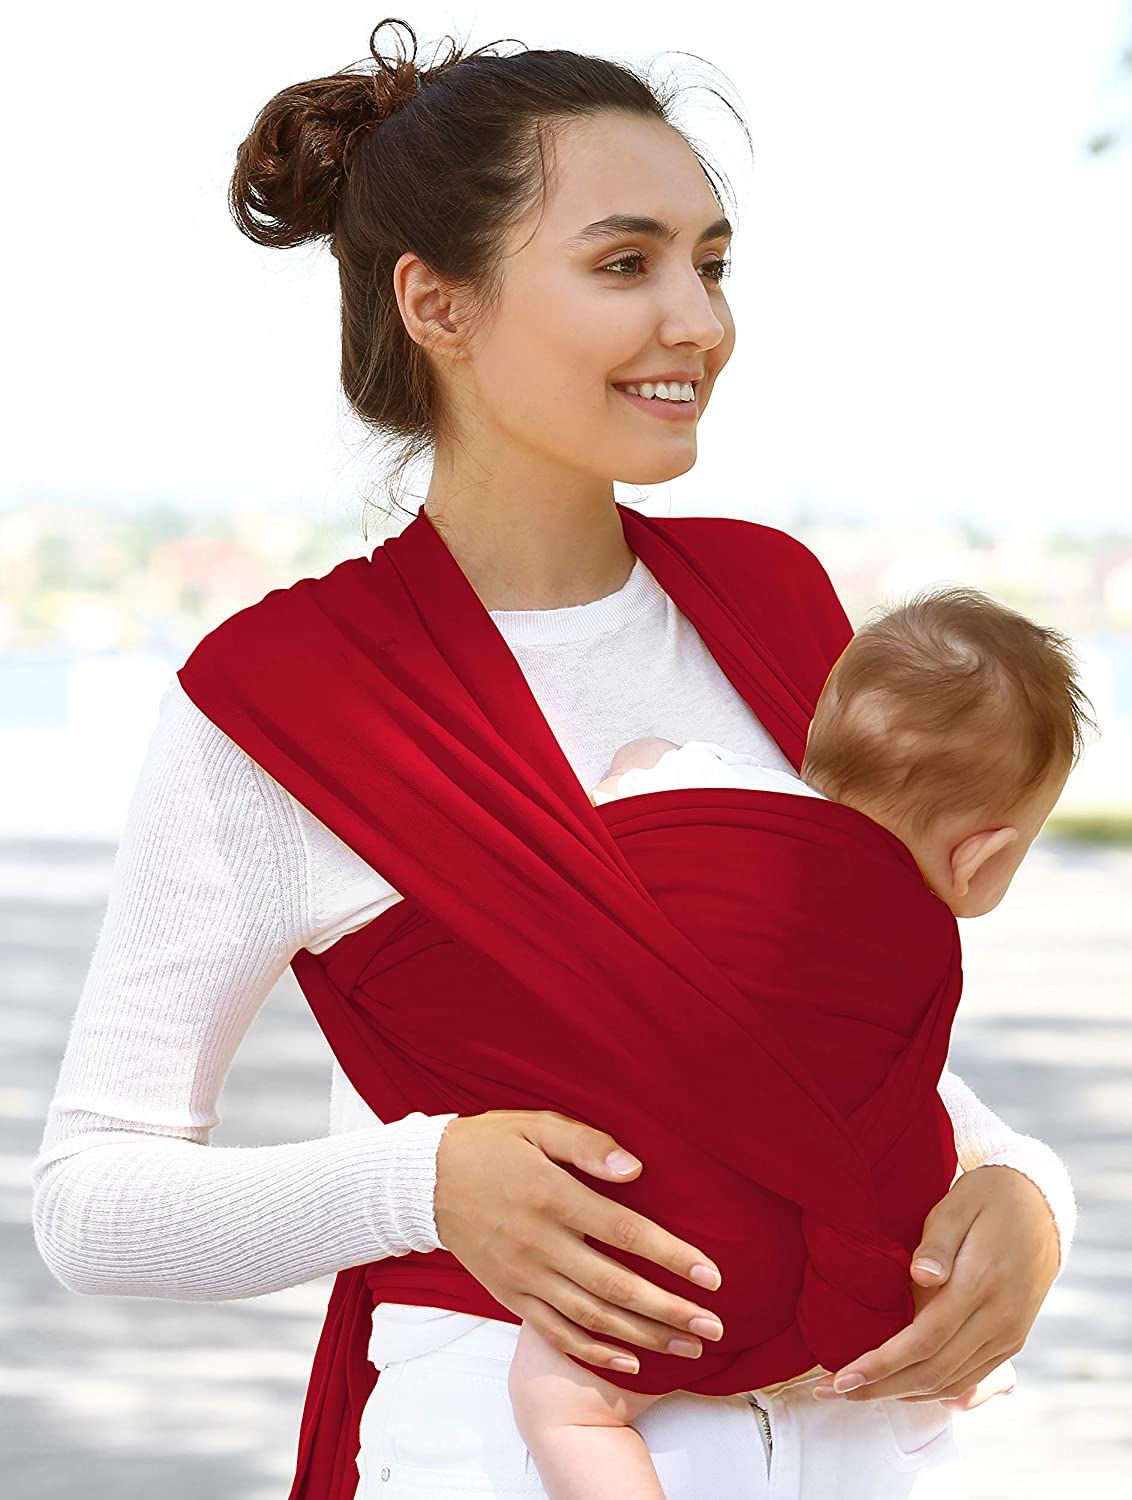 Fuufa breathable baby carrier is an elastic sling sling carrier for newborns and babies with binding instructions and free drawstring bag your baby will love our baby towel//carrying system./…